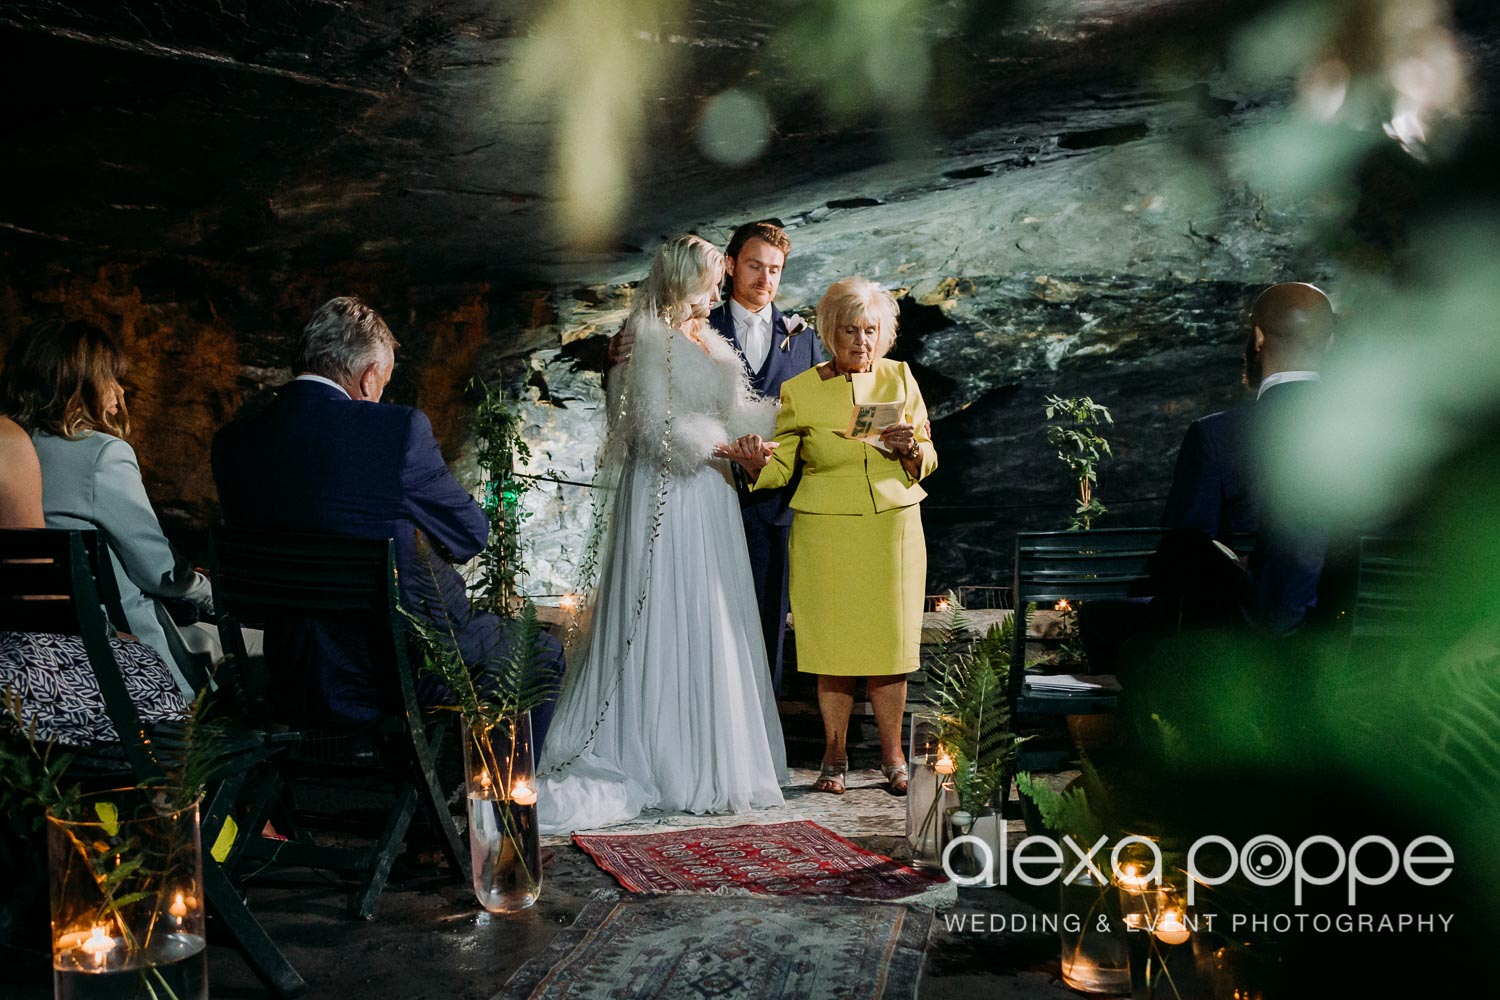 VA_wedding_edenproject_carnglaze_25.jpg